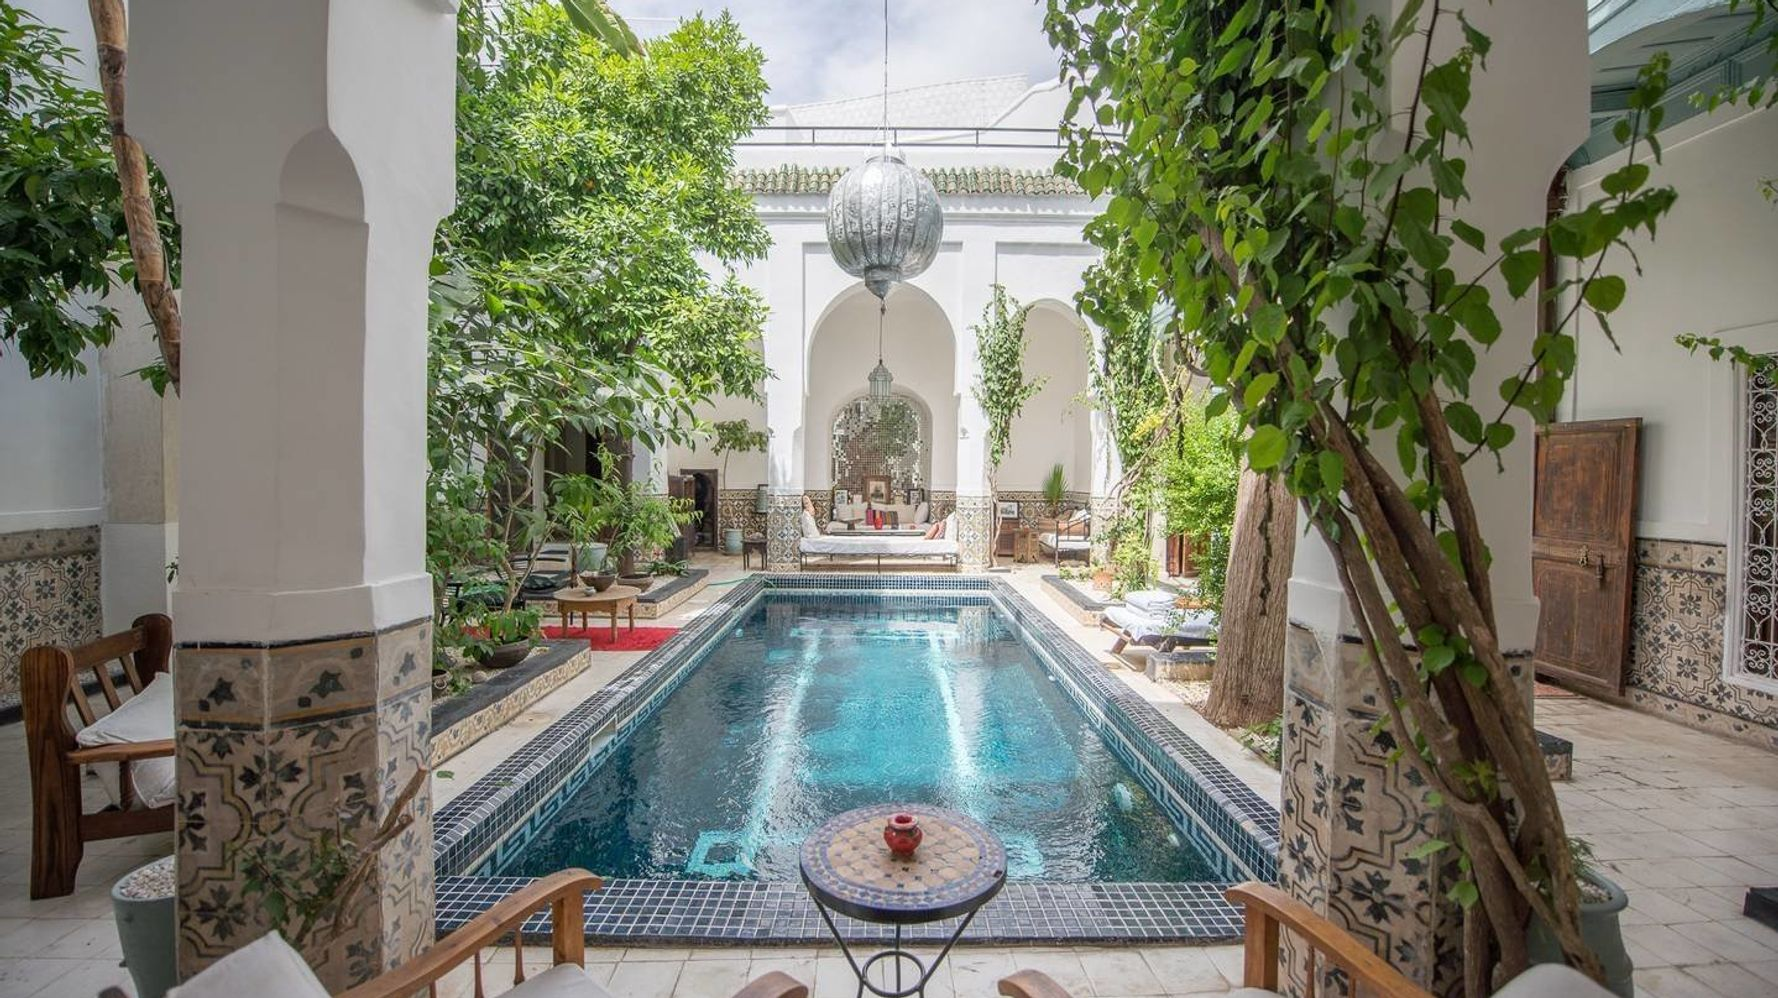 16 Simply Stunning Airbnbs For Weddings | HuffPost Life